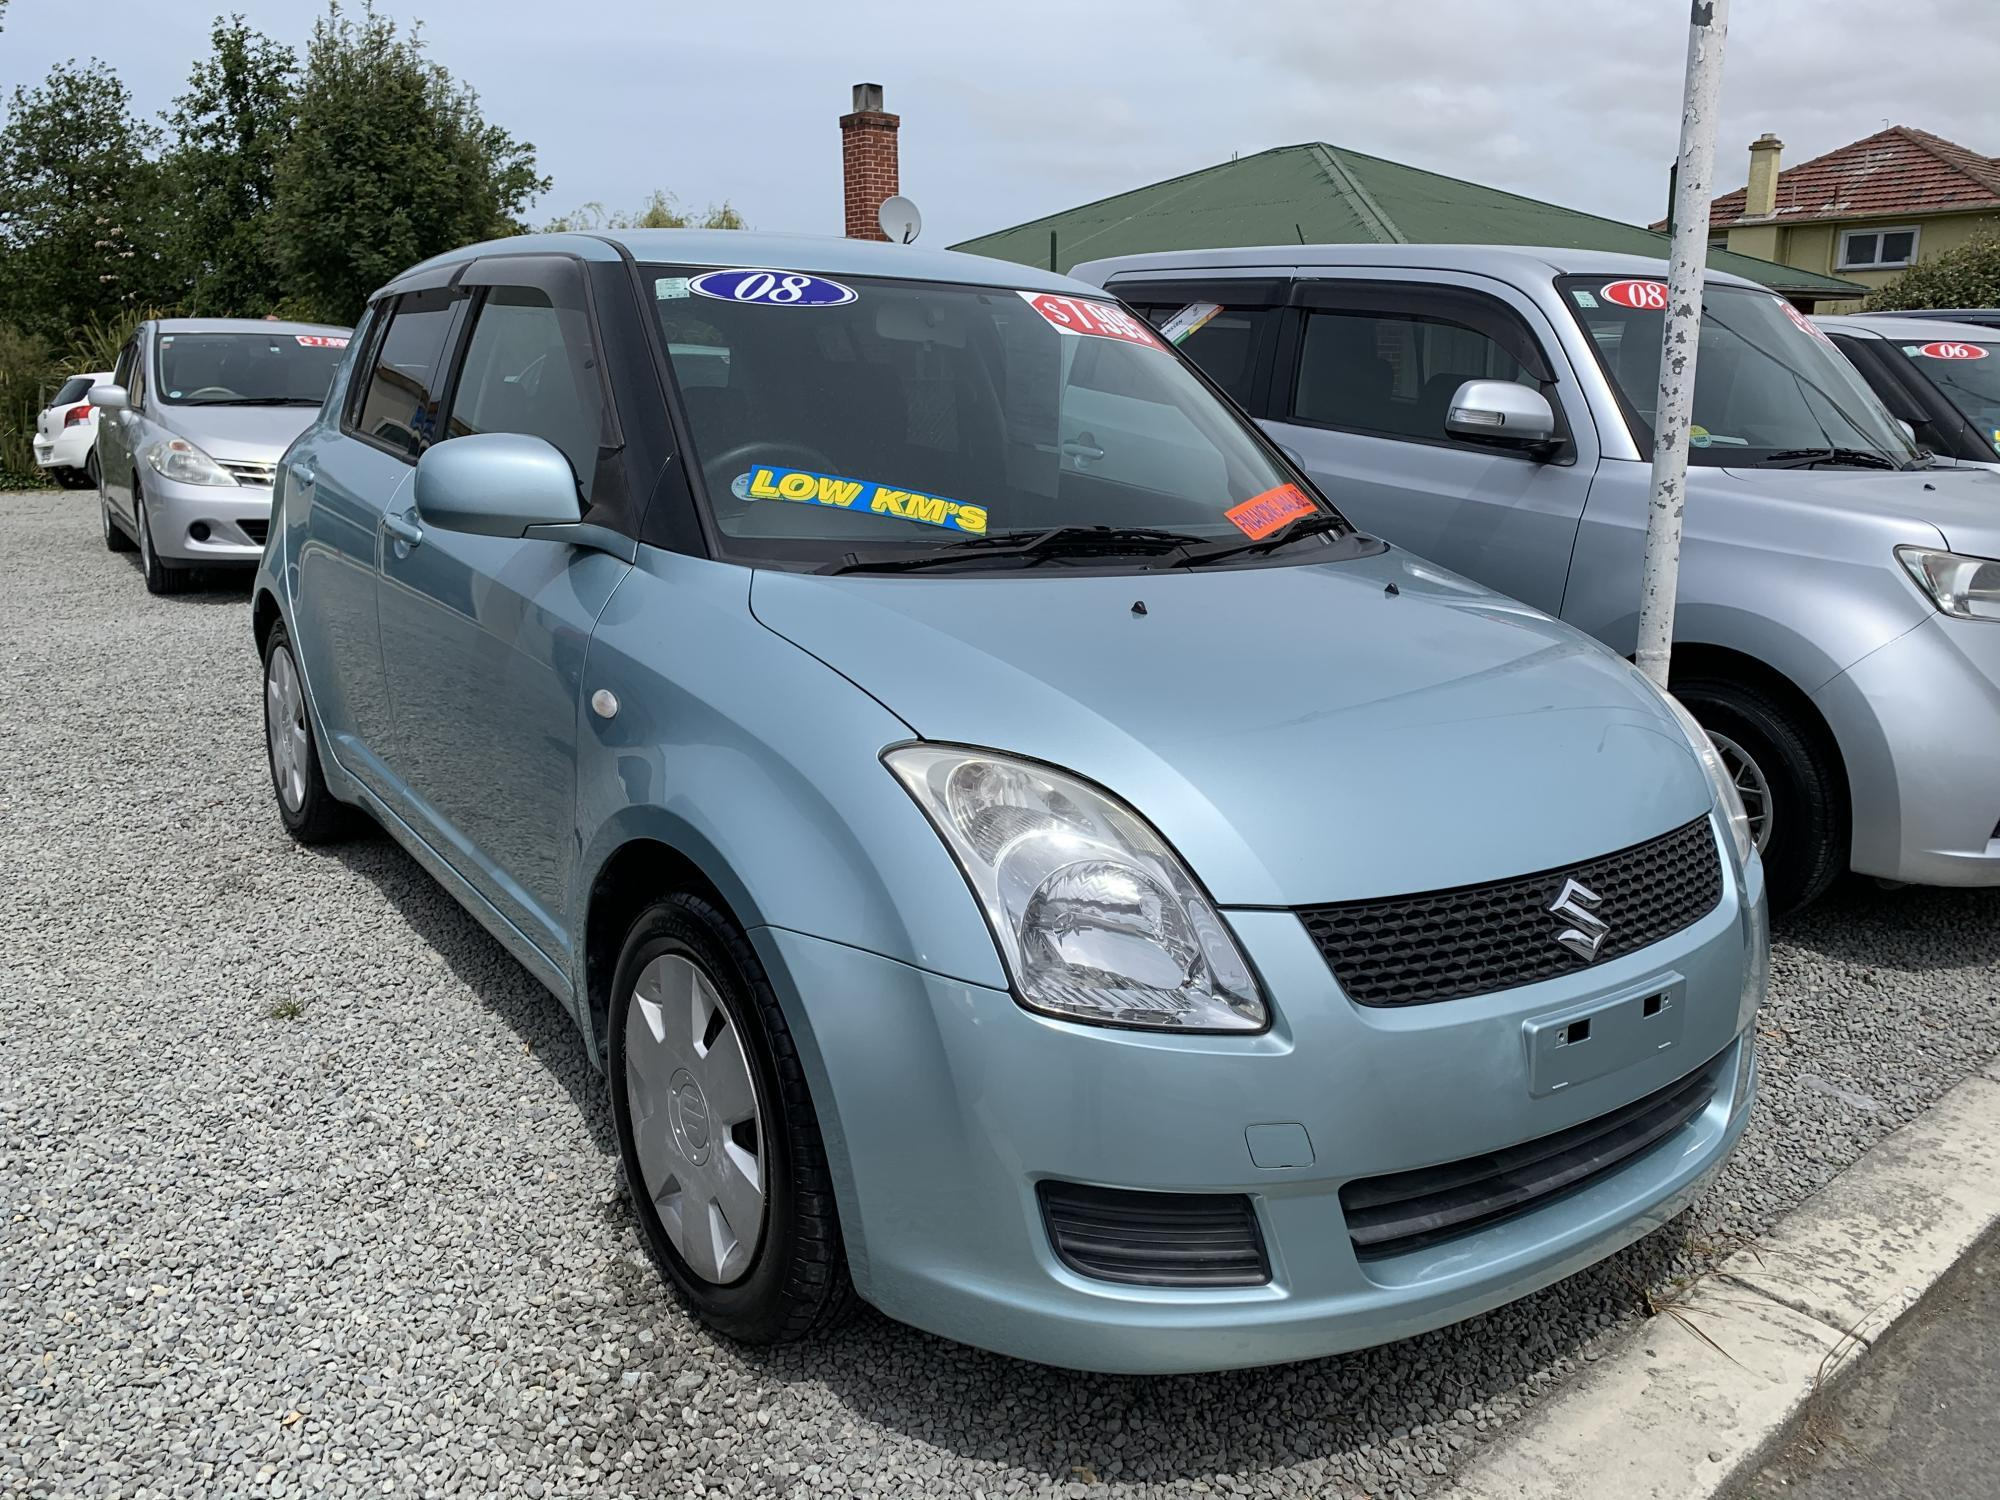 image-0, '08 Suzuki Swift  at Timaru